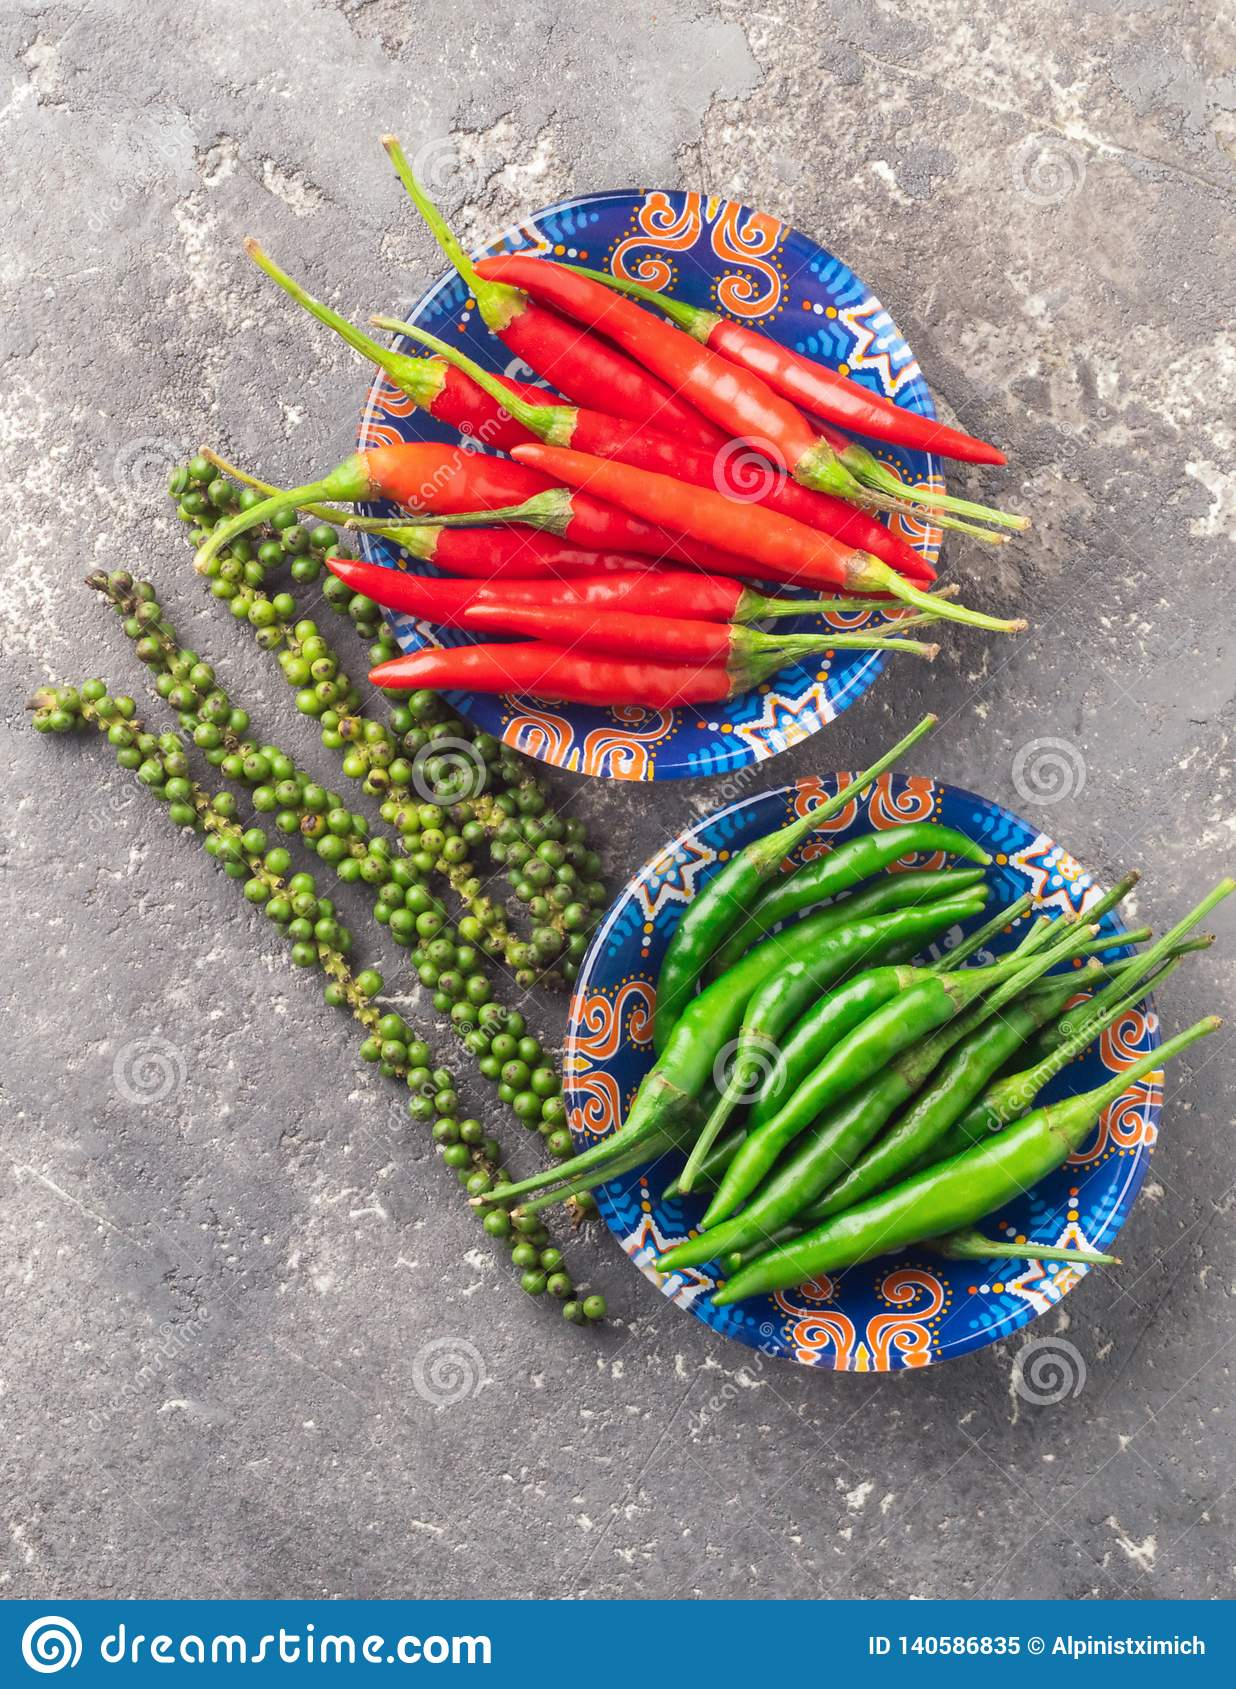 Different varieties of hot pepper on a gray textured background. East Asian food concept. Flat layout.